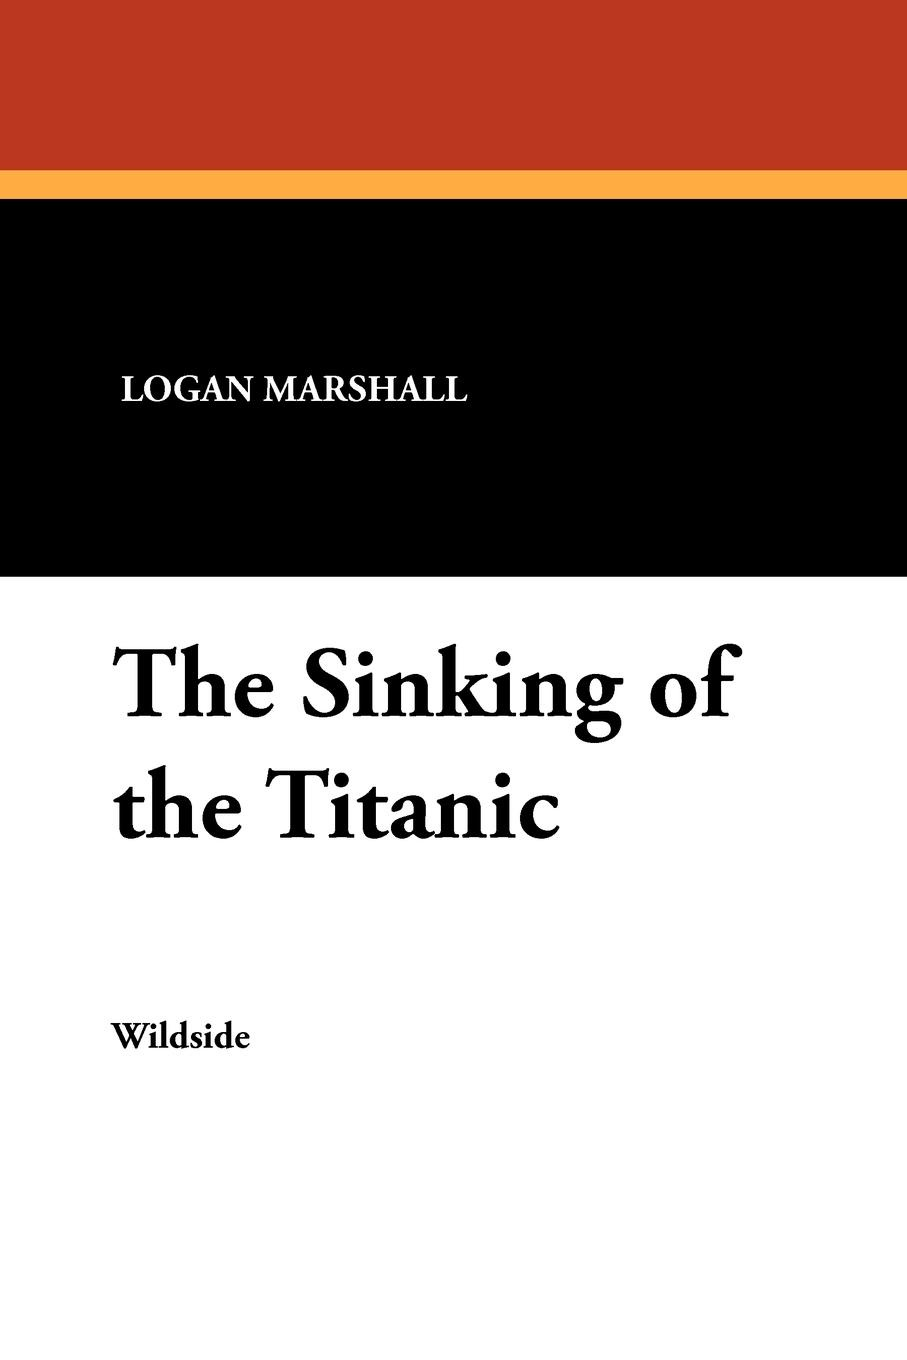 Logan Marshall The Sinking of the Titanic robert norman bland historical tombstones of malacca mostly of portuguese origin with the inscriptions in detail and illustrated by numerous photographs